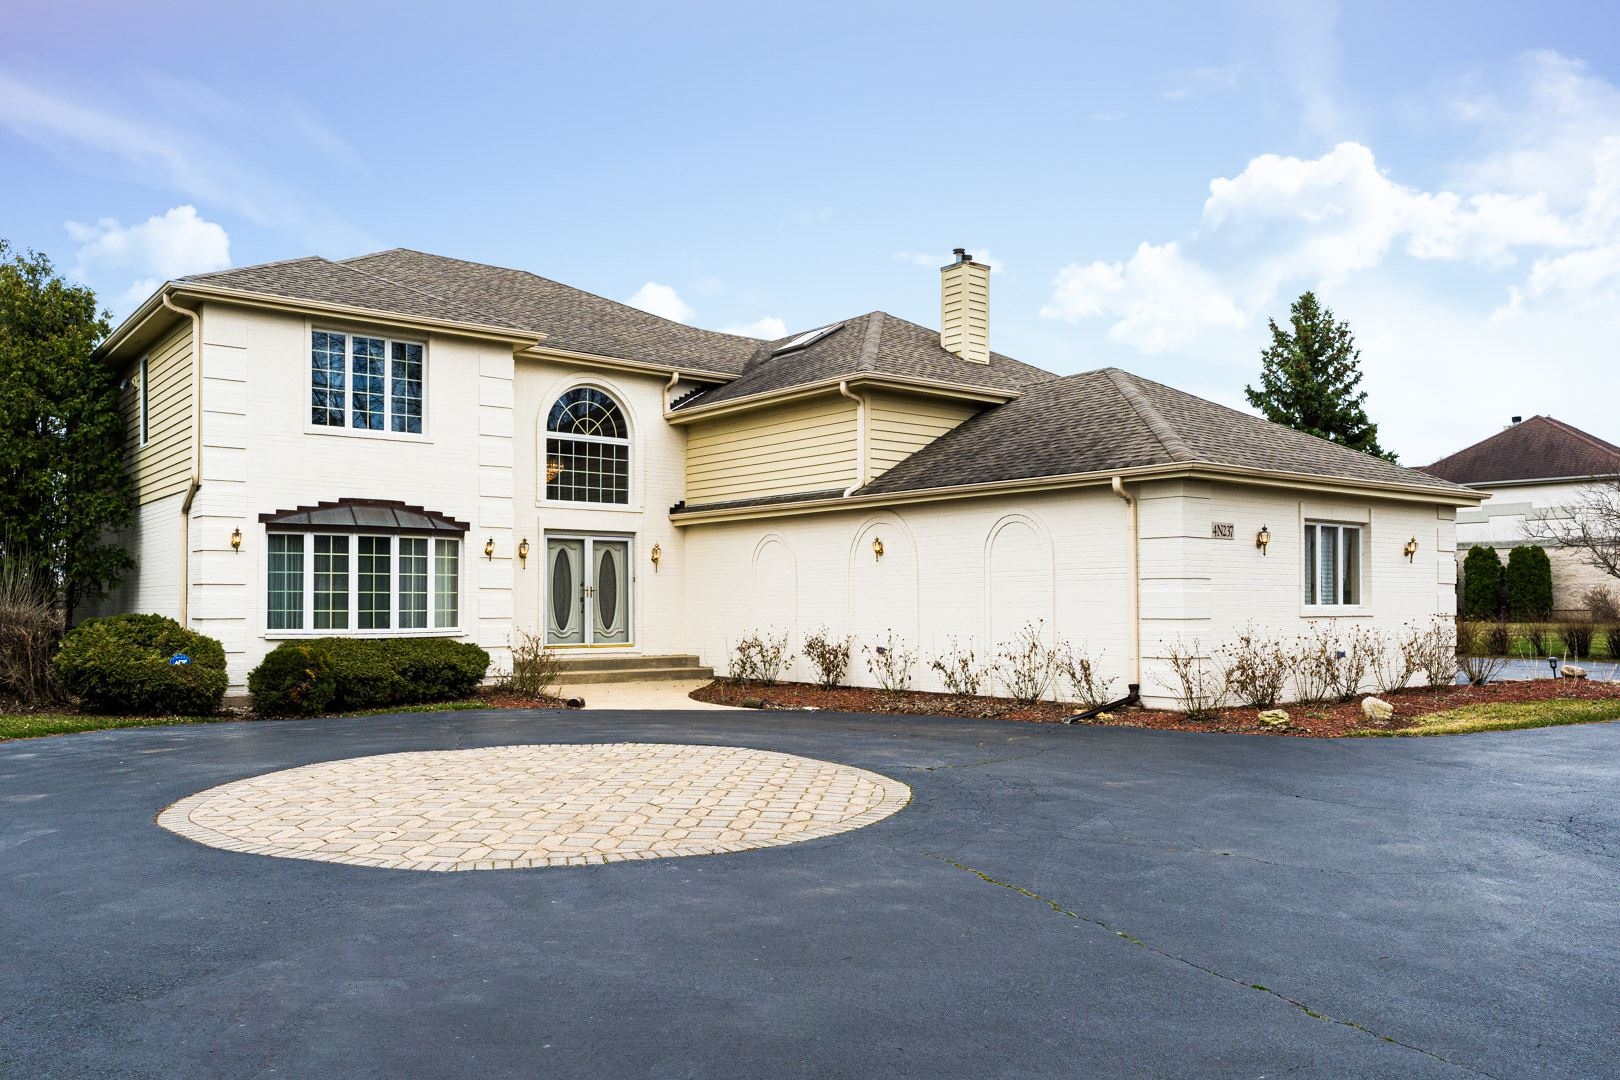 4N237 Doral Drive, West Chicago, IL 60185 - #: 11014665